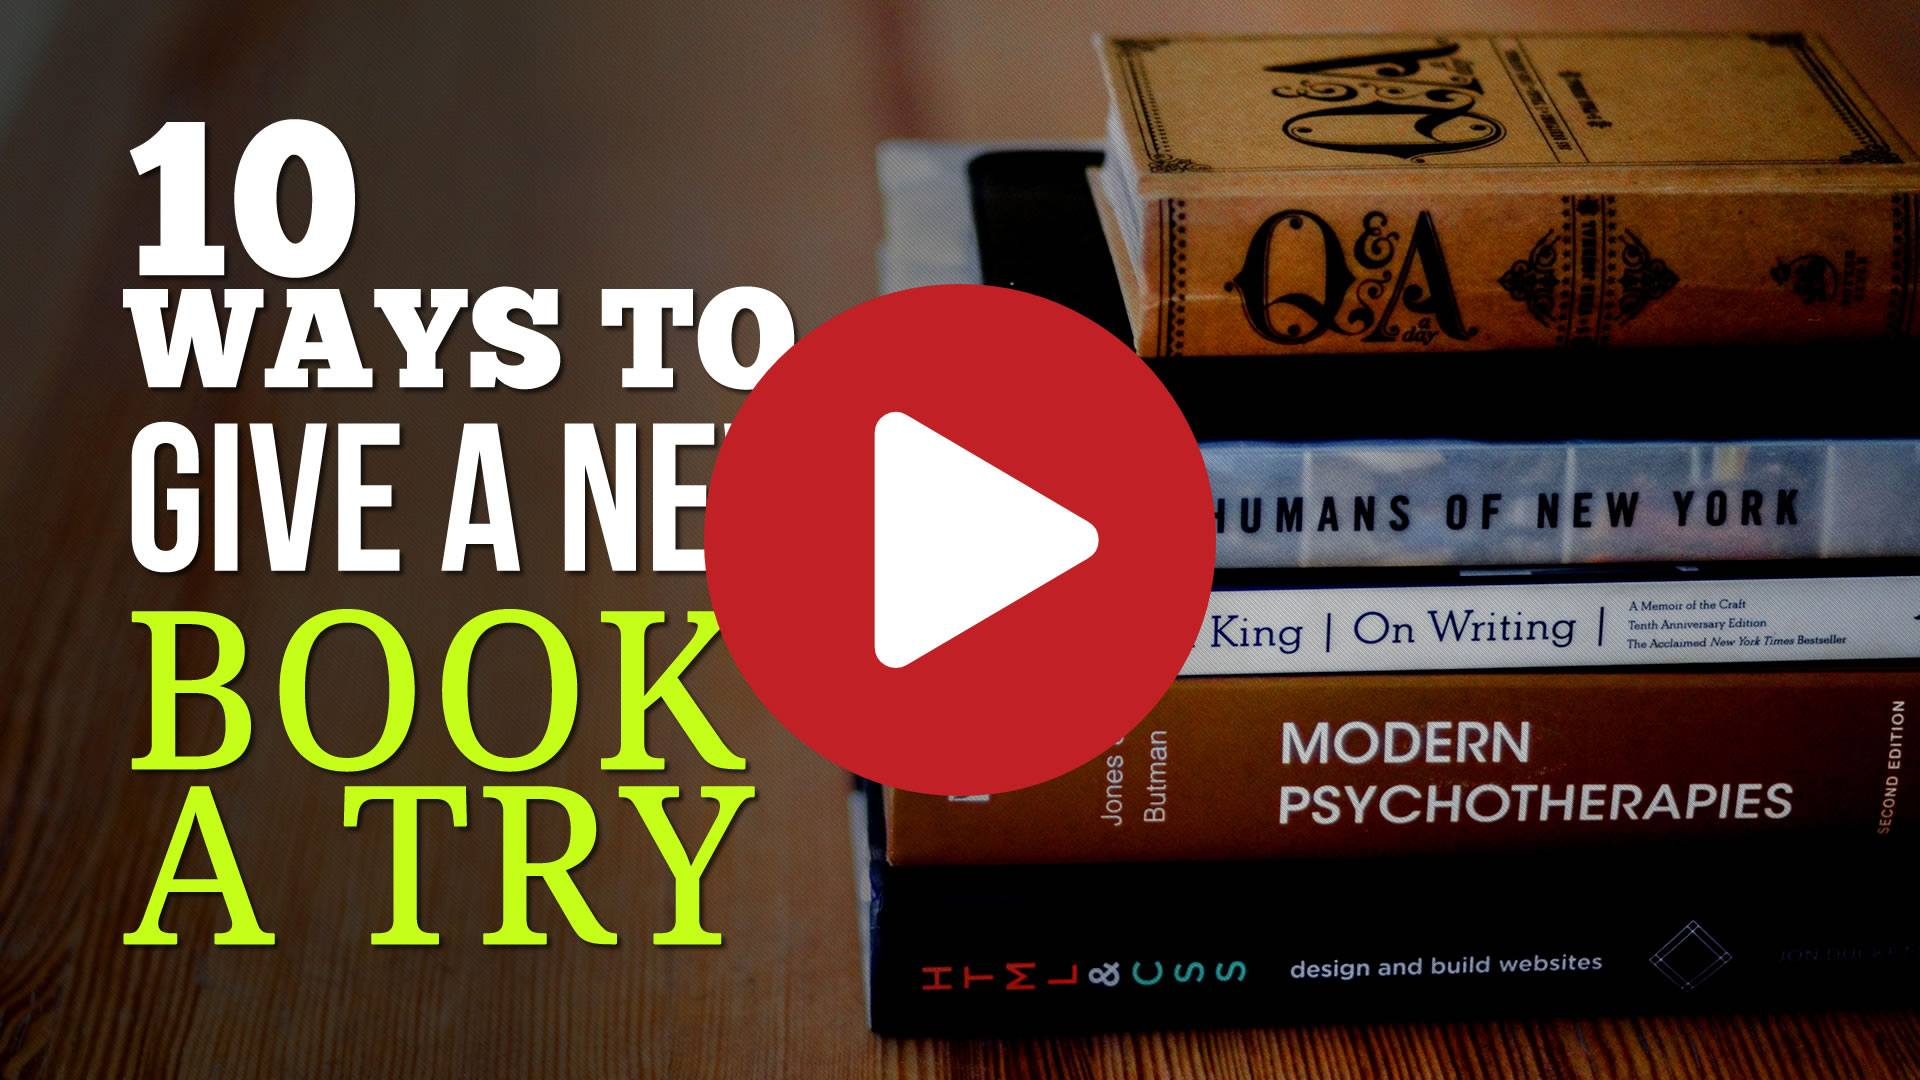 10 Ways to Give A New Book A Try